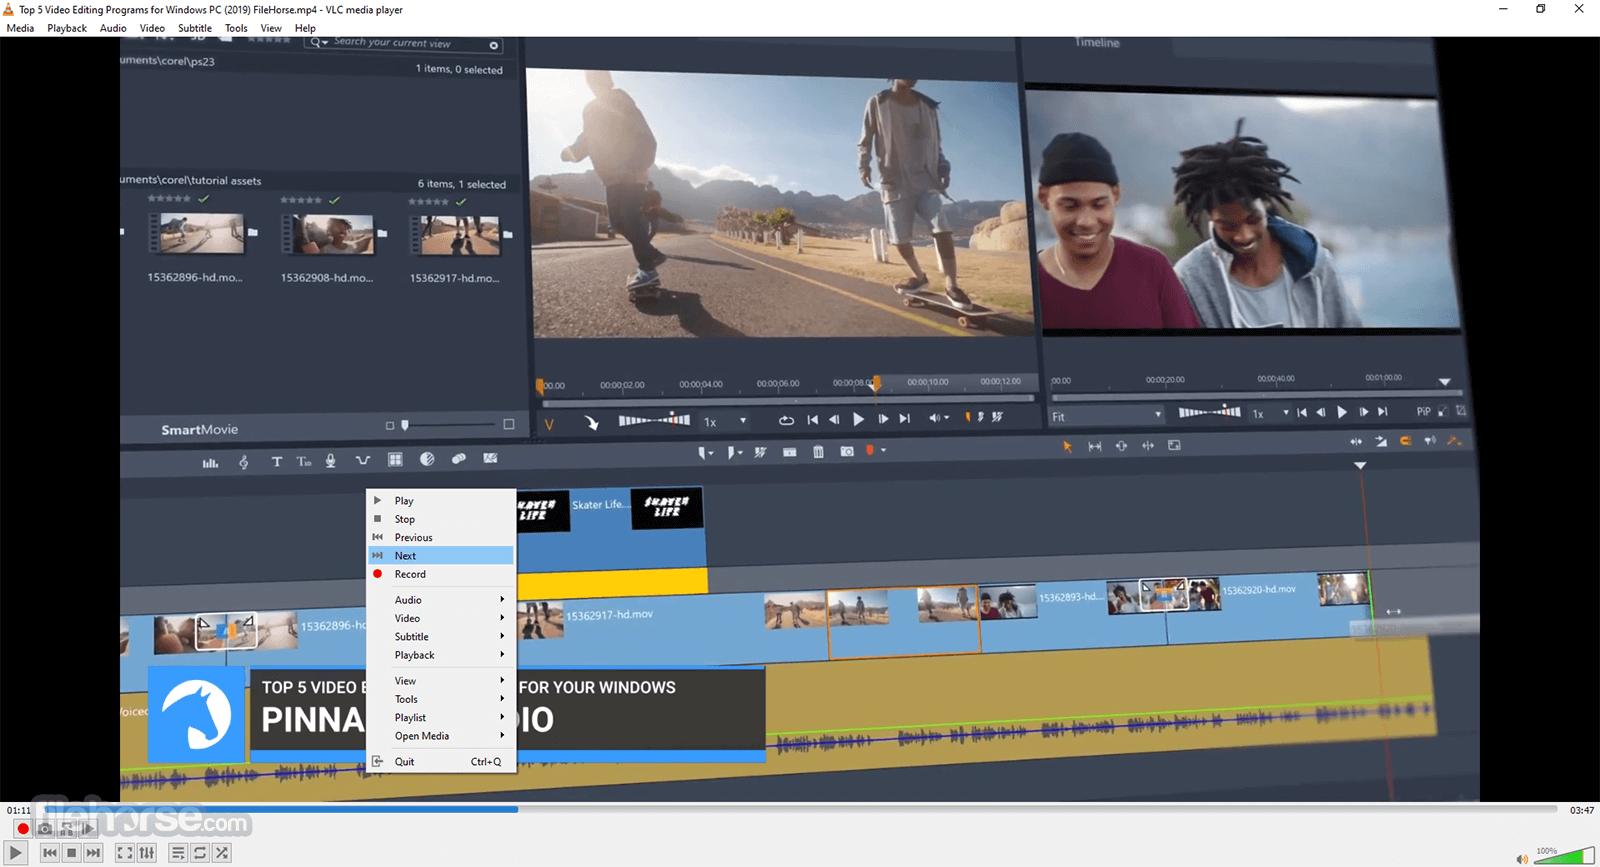 vlc media player free download for windows 7 latest version 2018